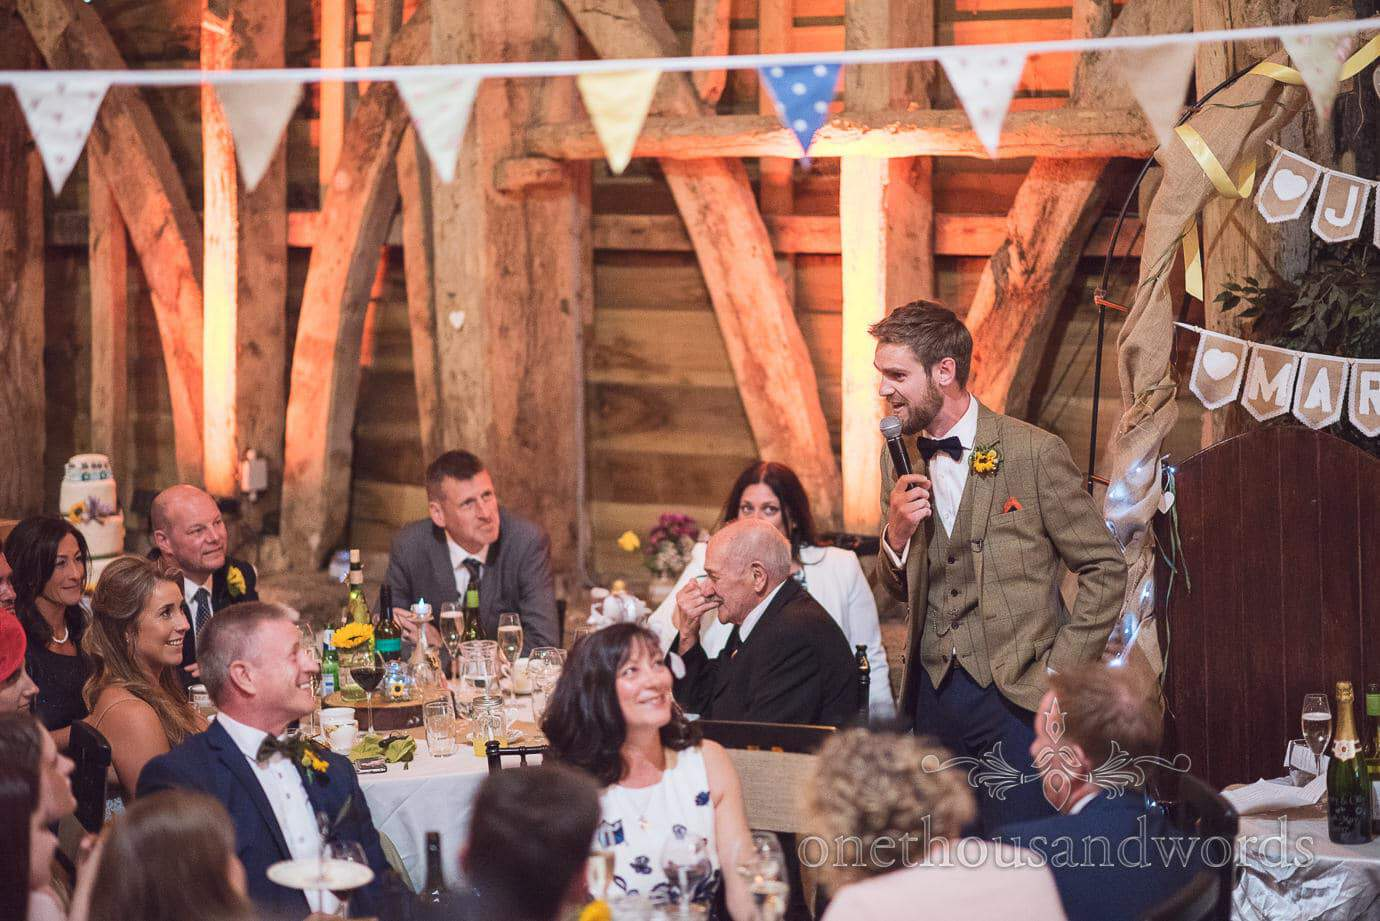 Groom in tan tweed suit delivers speech at rustic wedding in wooden barn with bunting